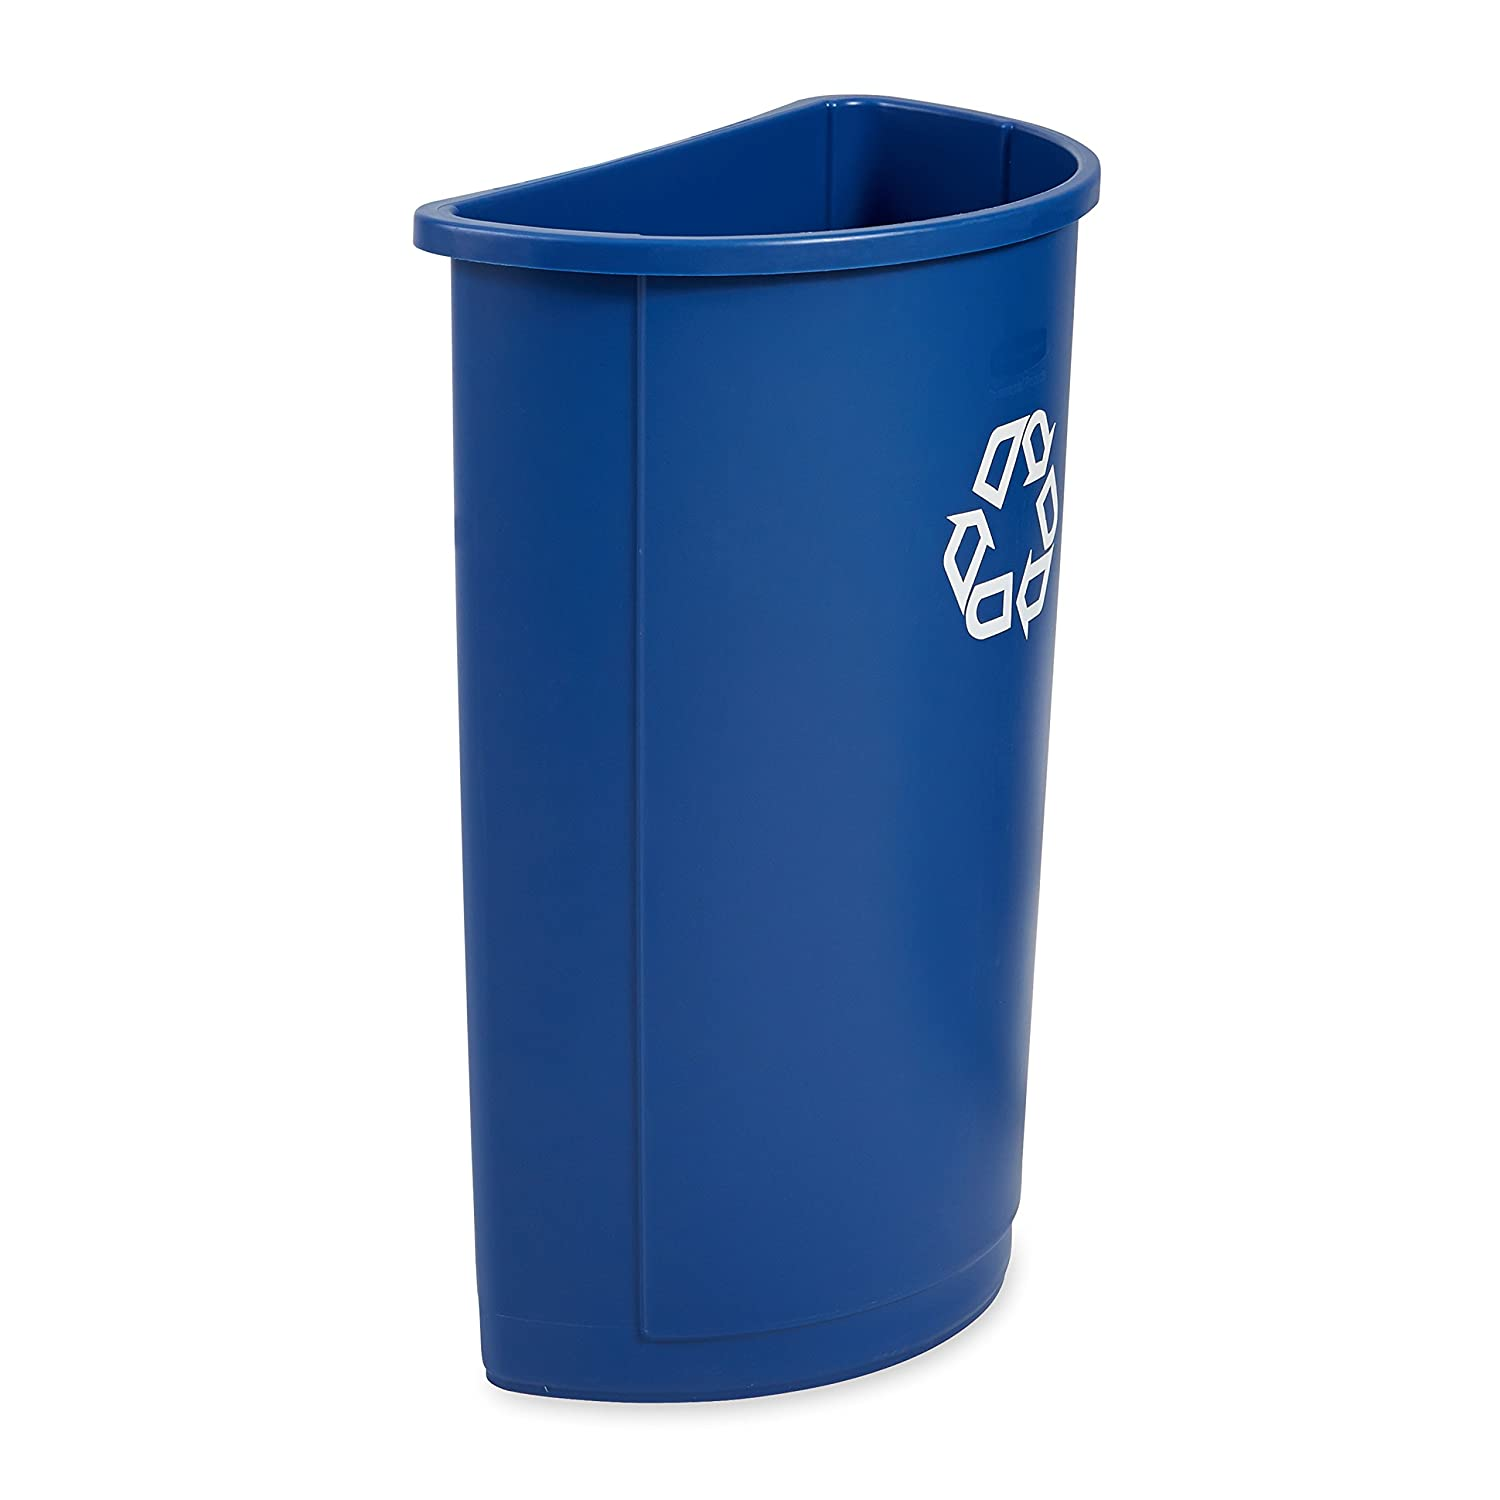 Rubbermaid Commercial Half Round Recycle Bin, 21-Gallon, Blue